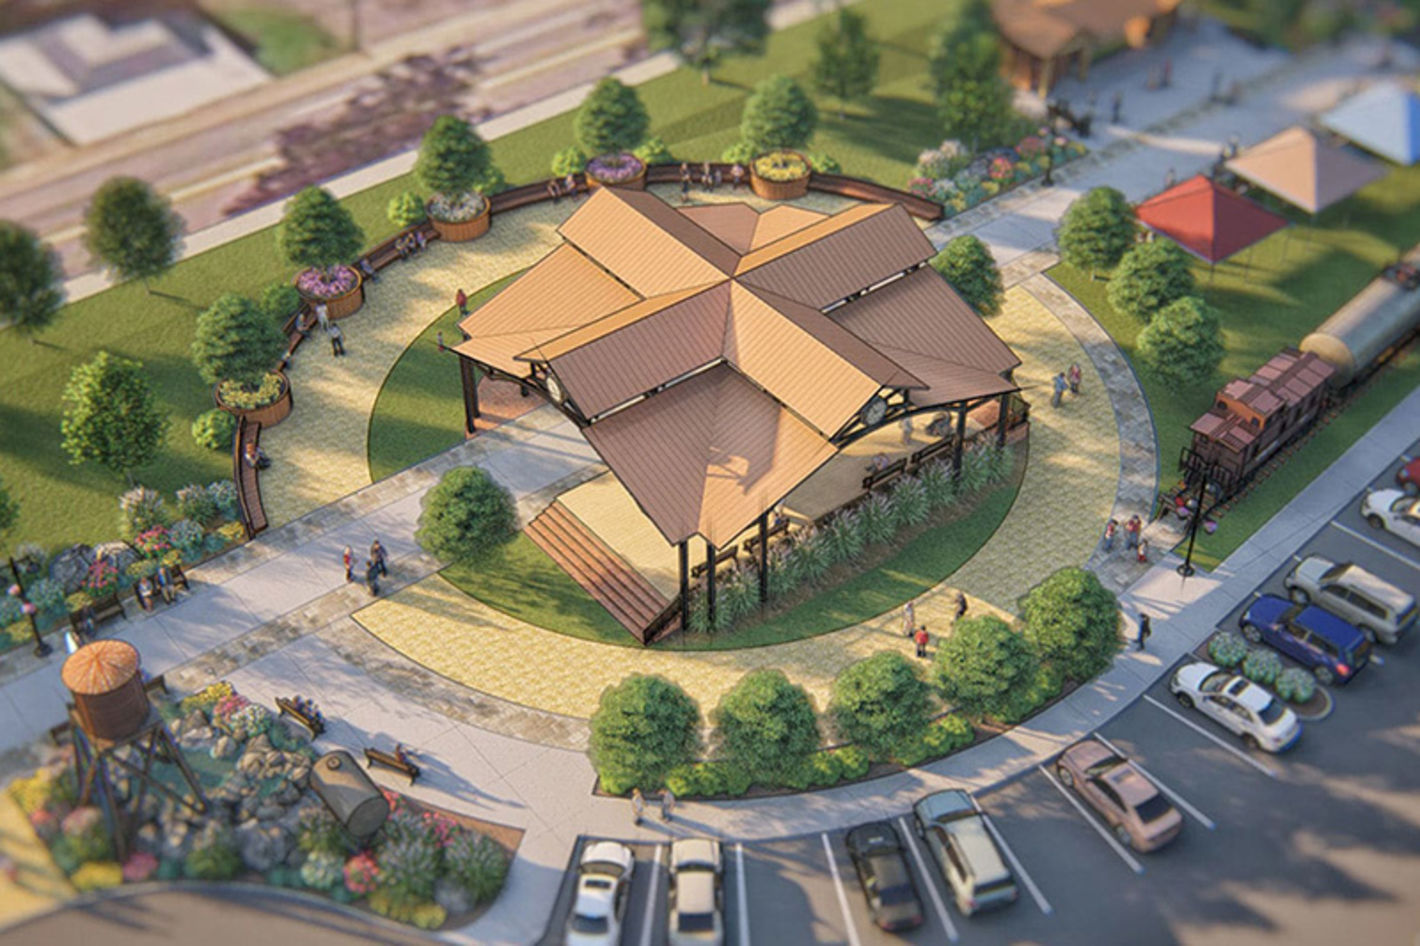 Berkeley Springs Depot Master Plan - Photo